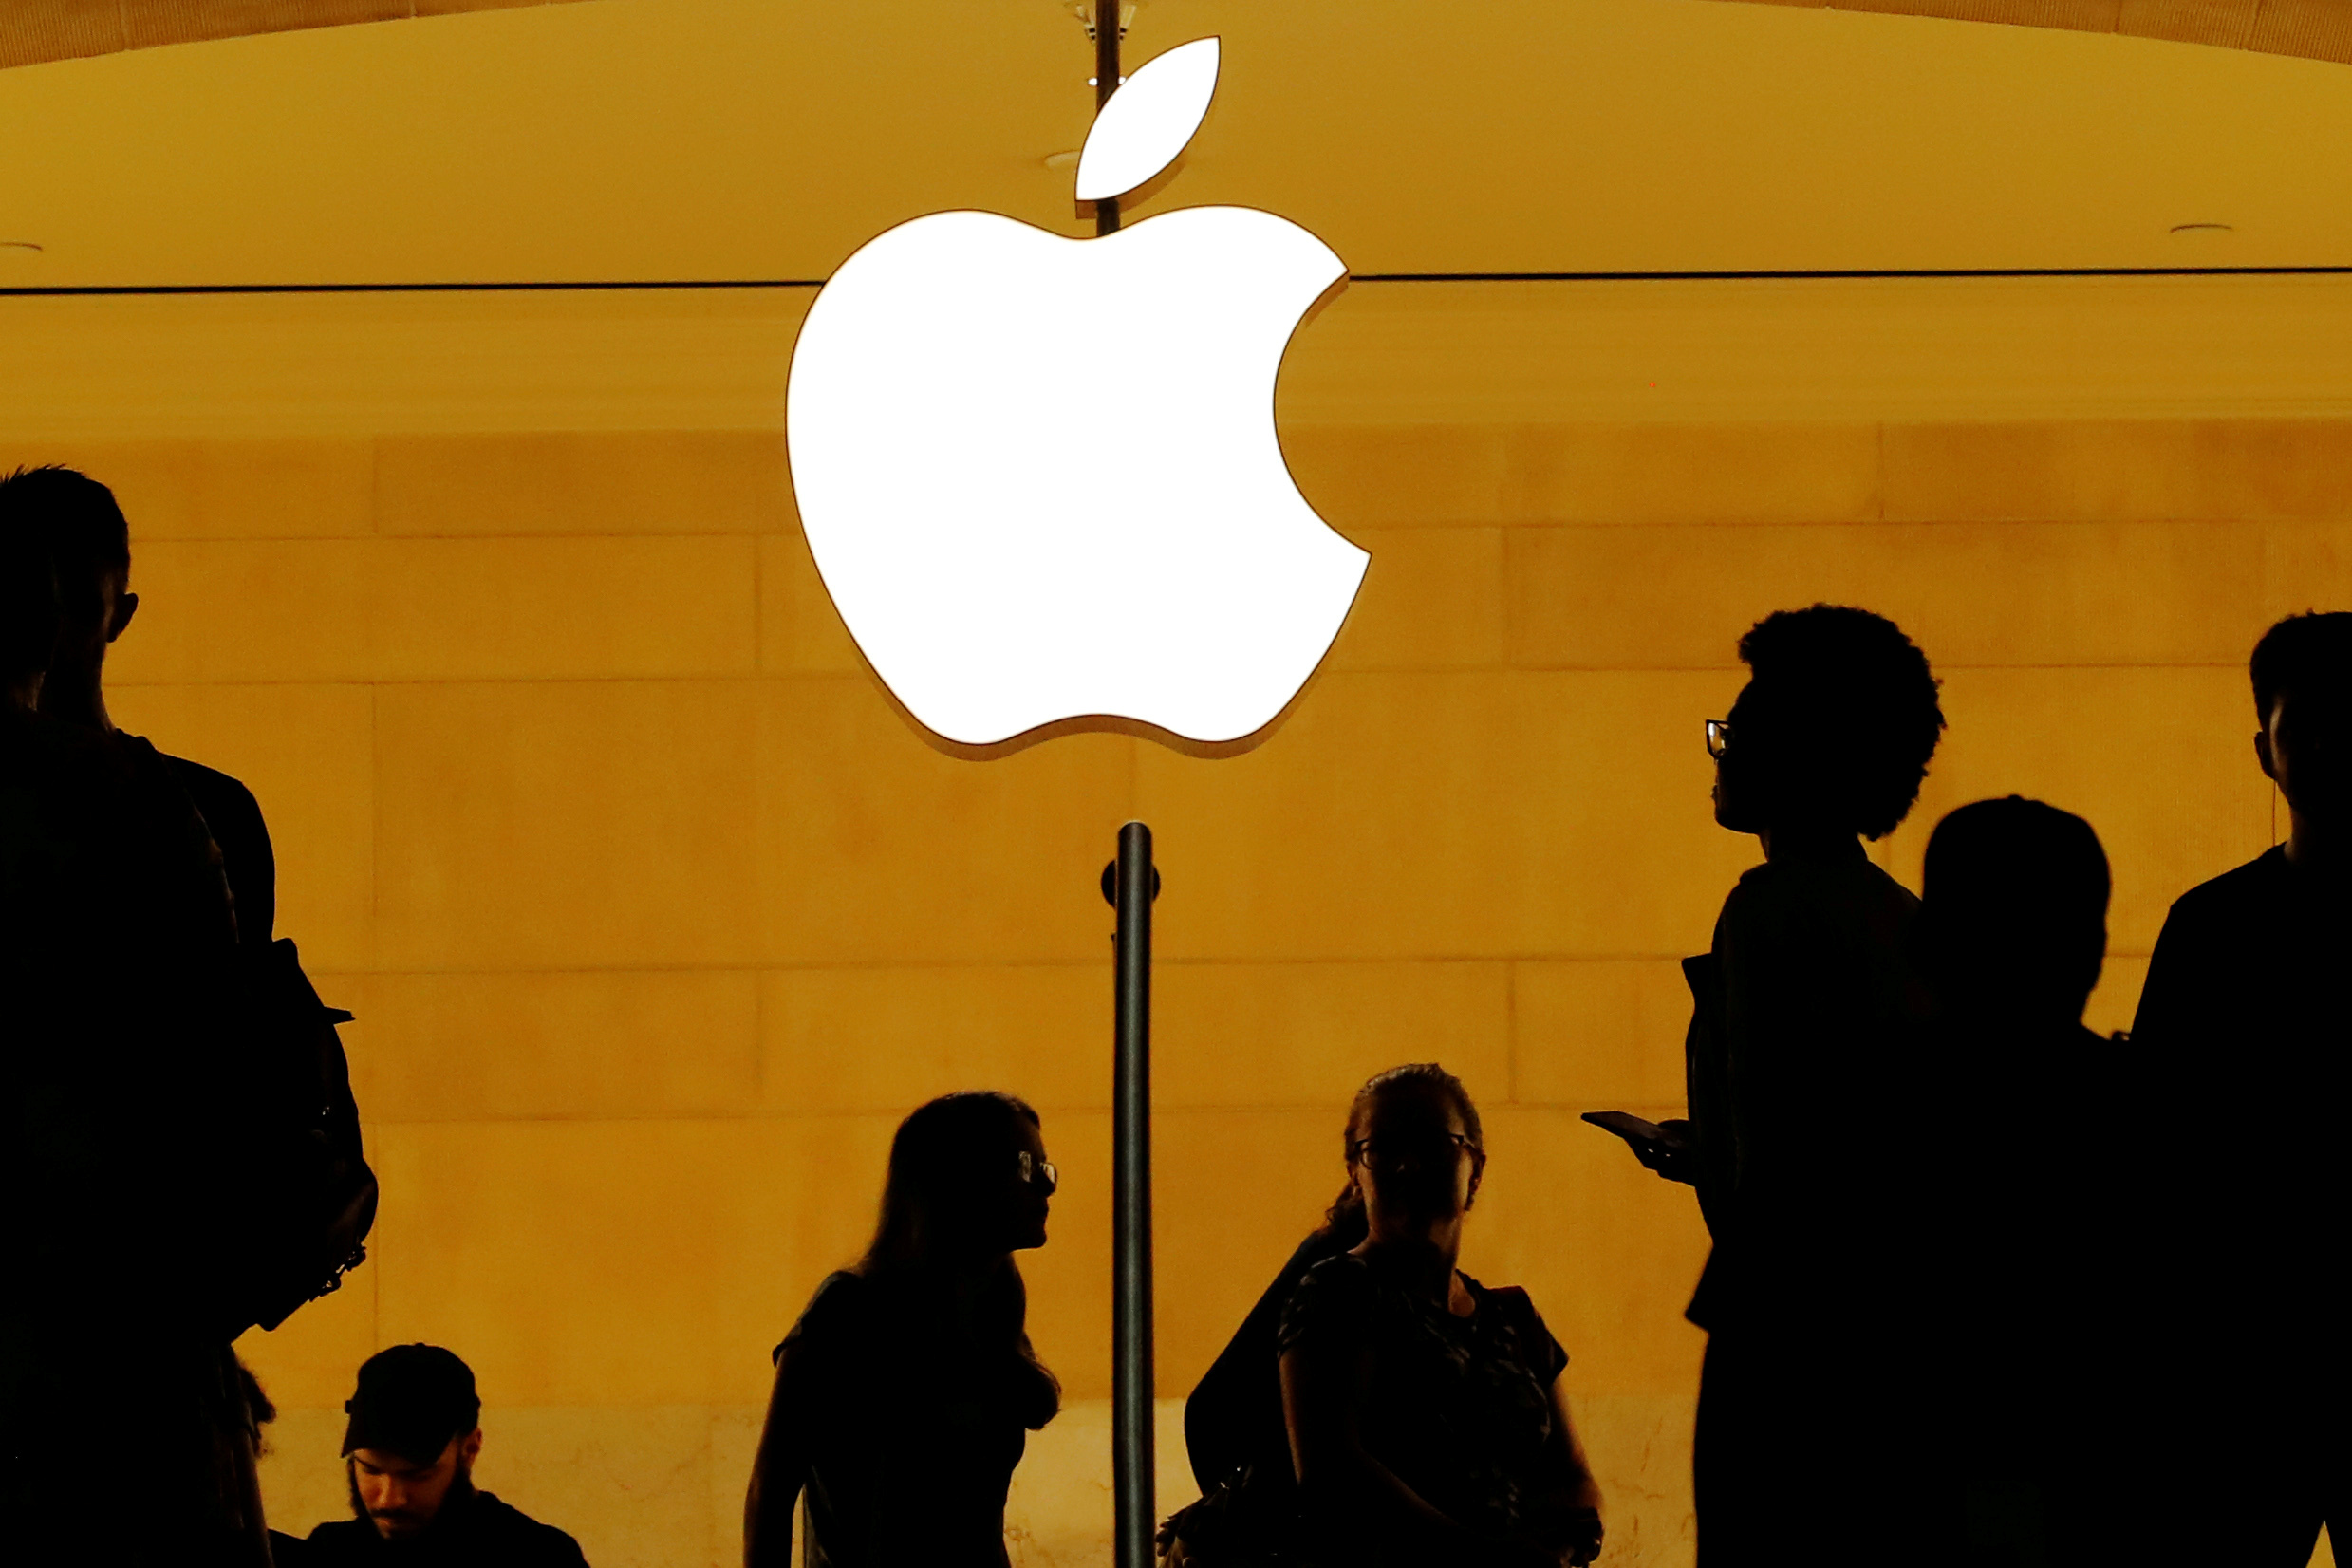 Apple's Supreme Court loss sends antitrust shock waves through Silicon Valley